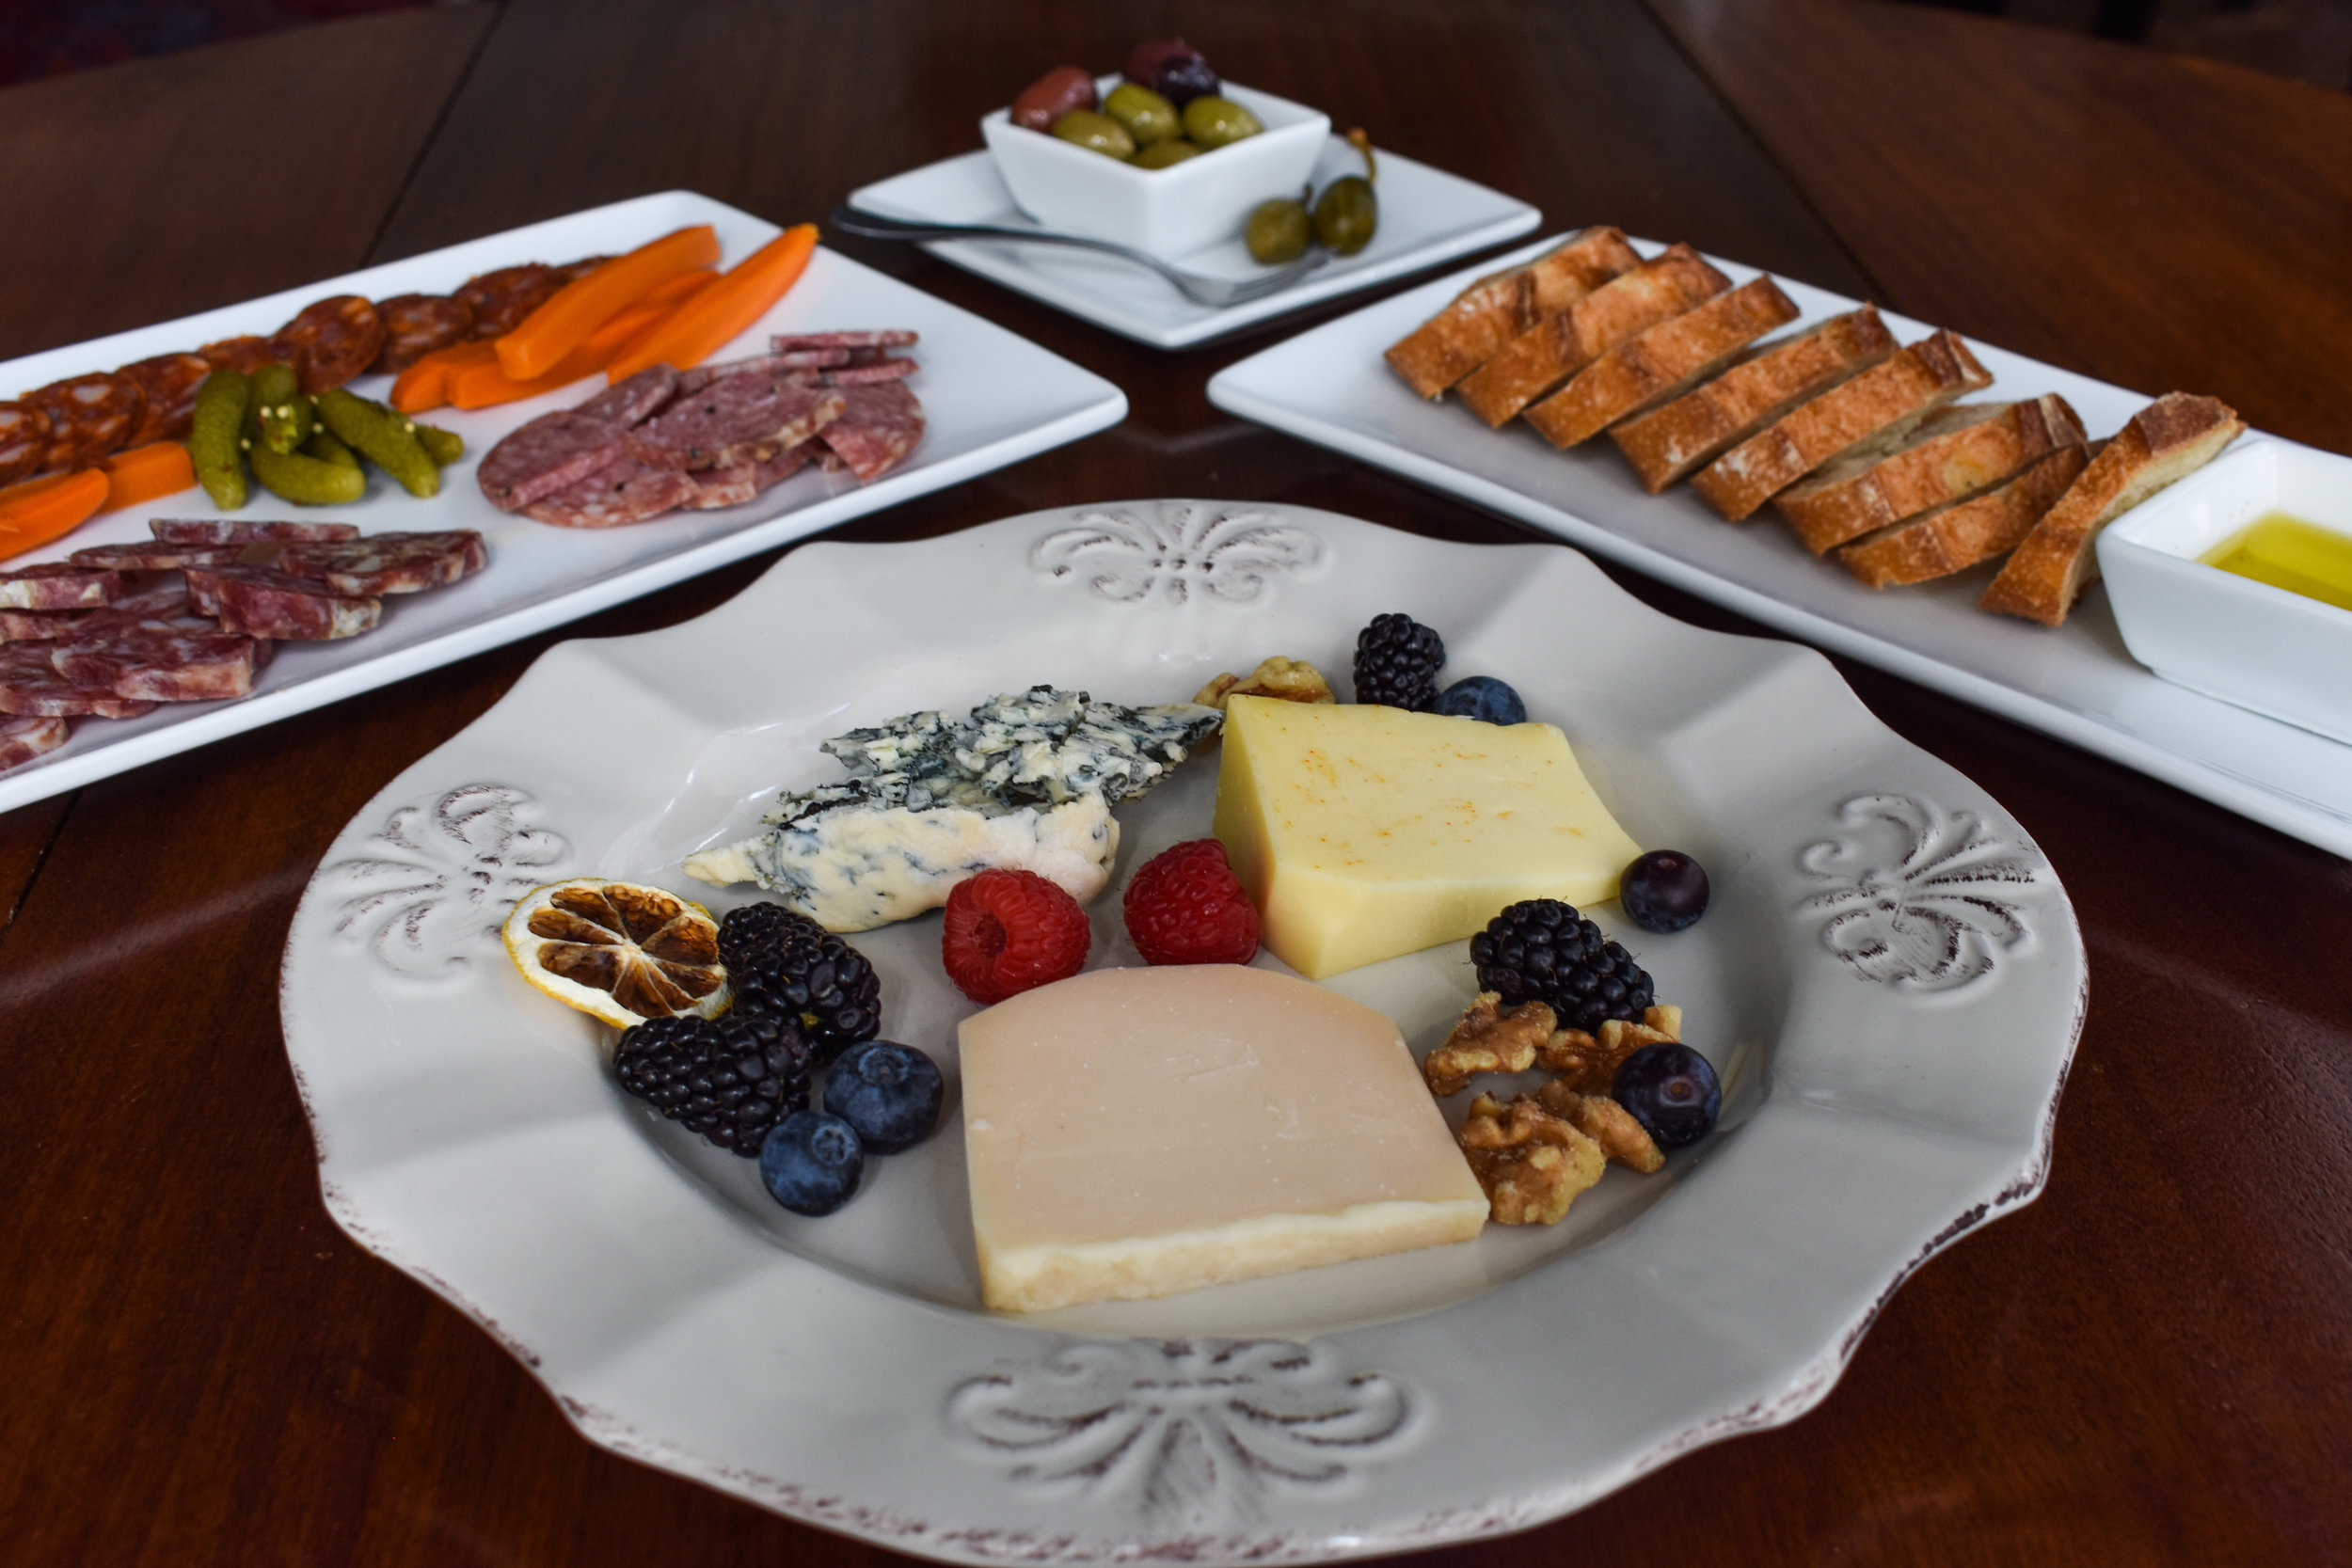 Fare - From tapas such as Tuscan meatballs and deviled eggs to platters of local and European cheeses and charcuterie. We offer light fare to be enjoyed with drinks in a lounge atmosphere.